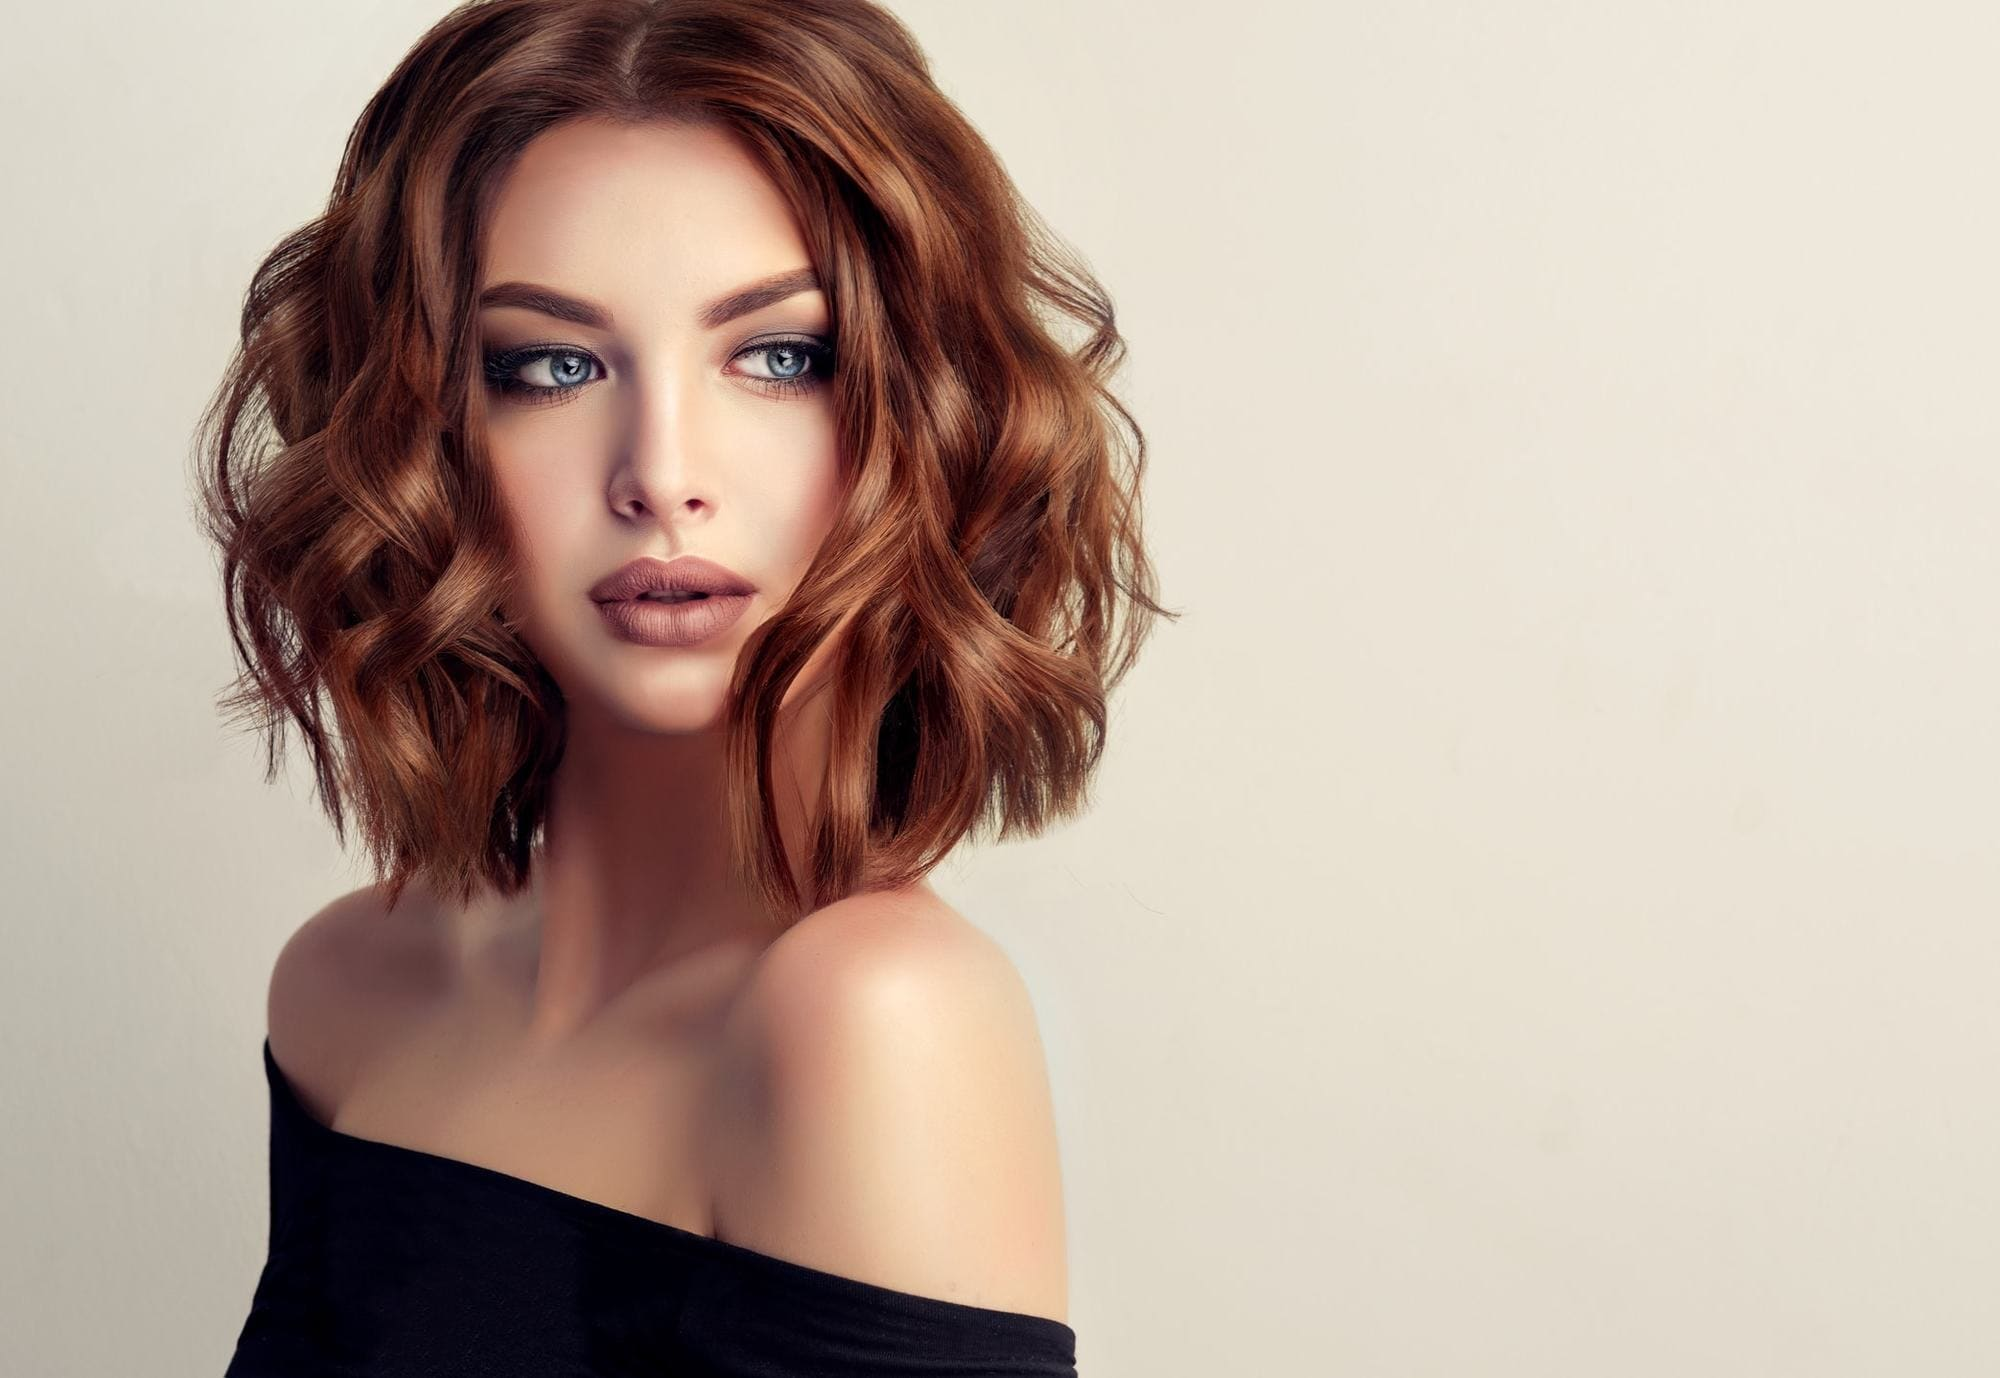 7 Best Tips And Styling Hacks For Wavy Hair In 2020 All Things Hair Usa